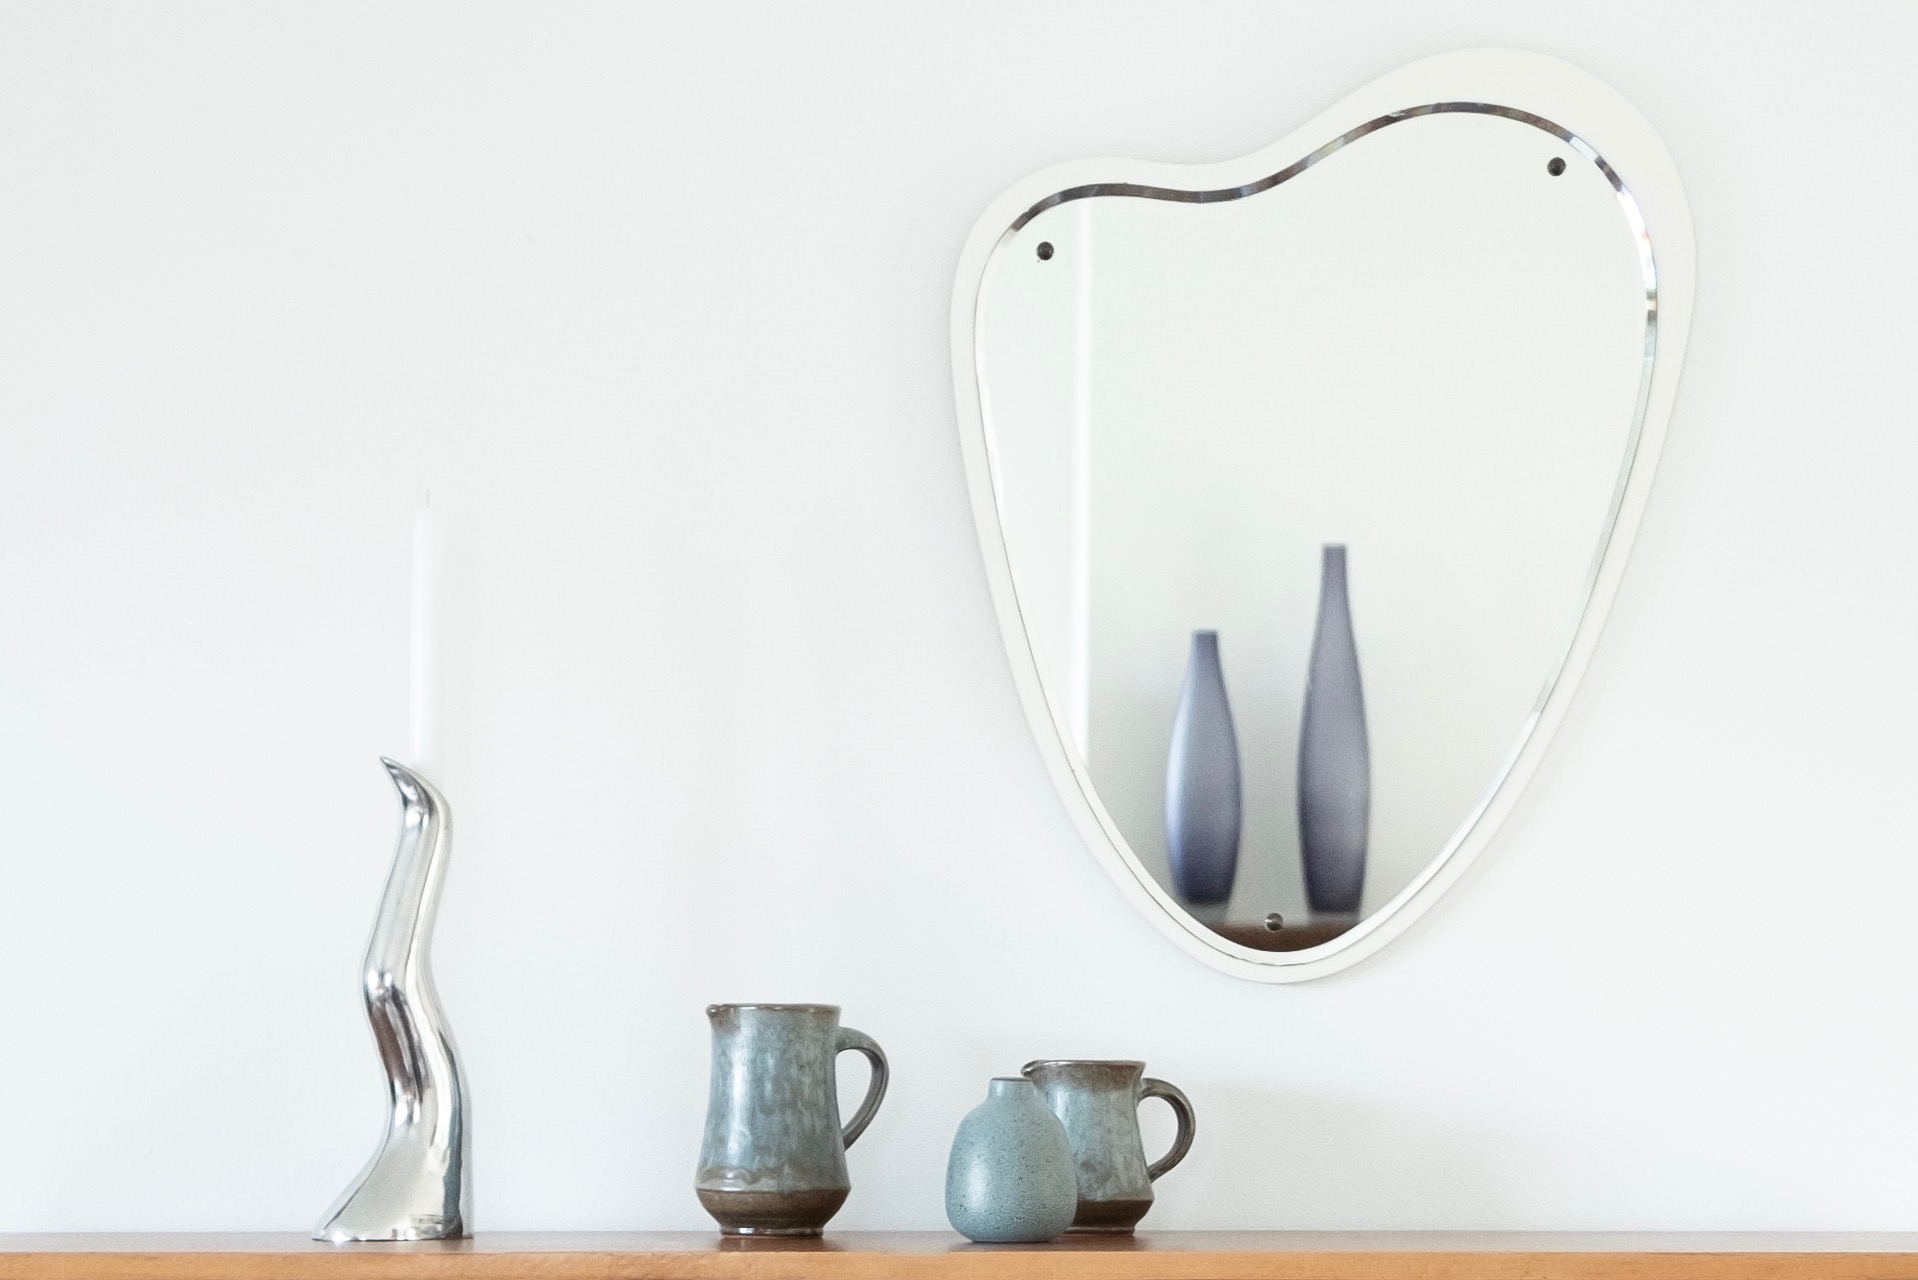 Close up image of silver Anna Efverlund design candle holder and small vases on sideboard with vintage mirror